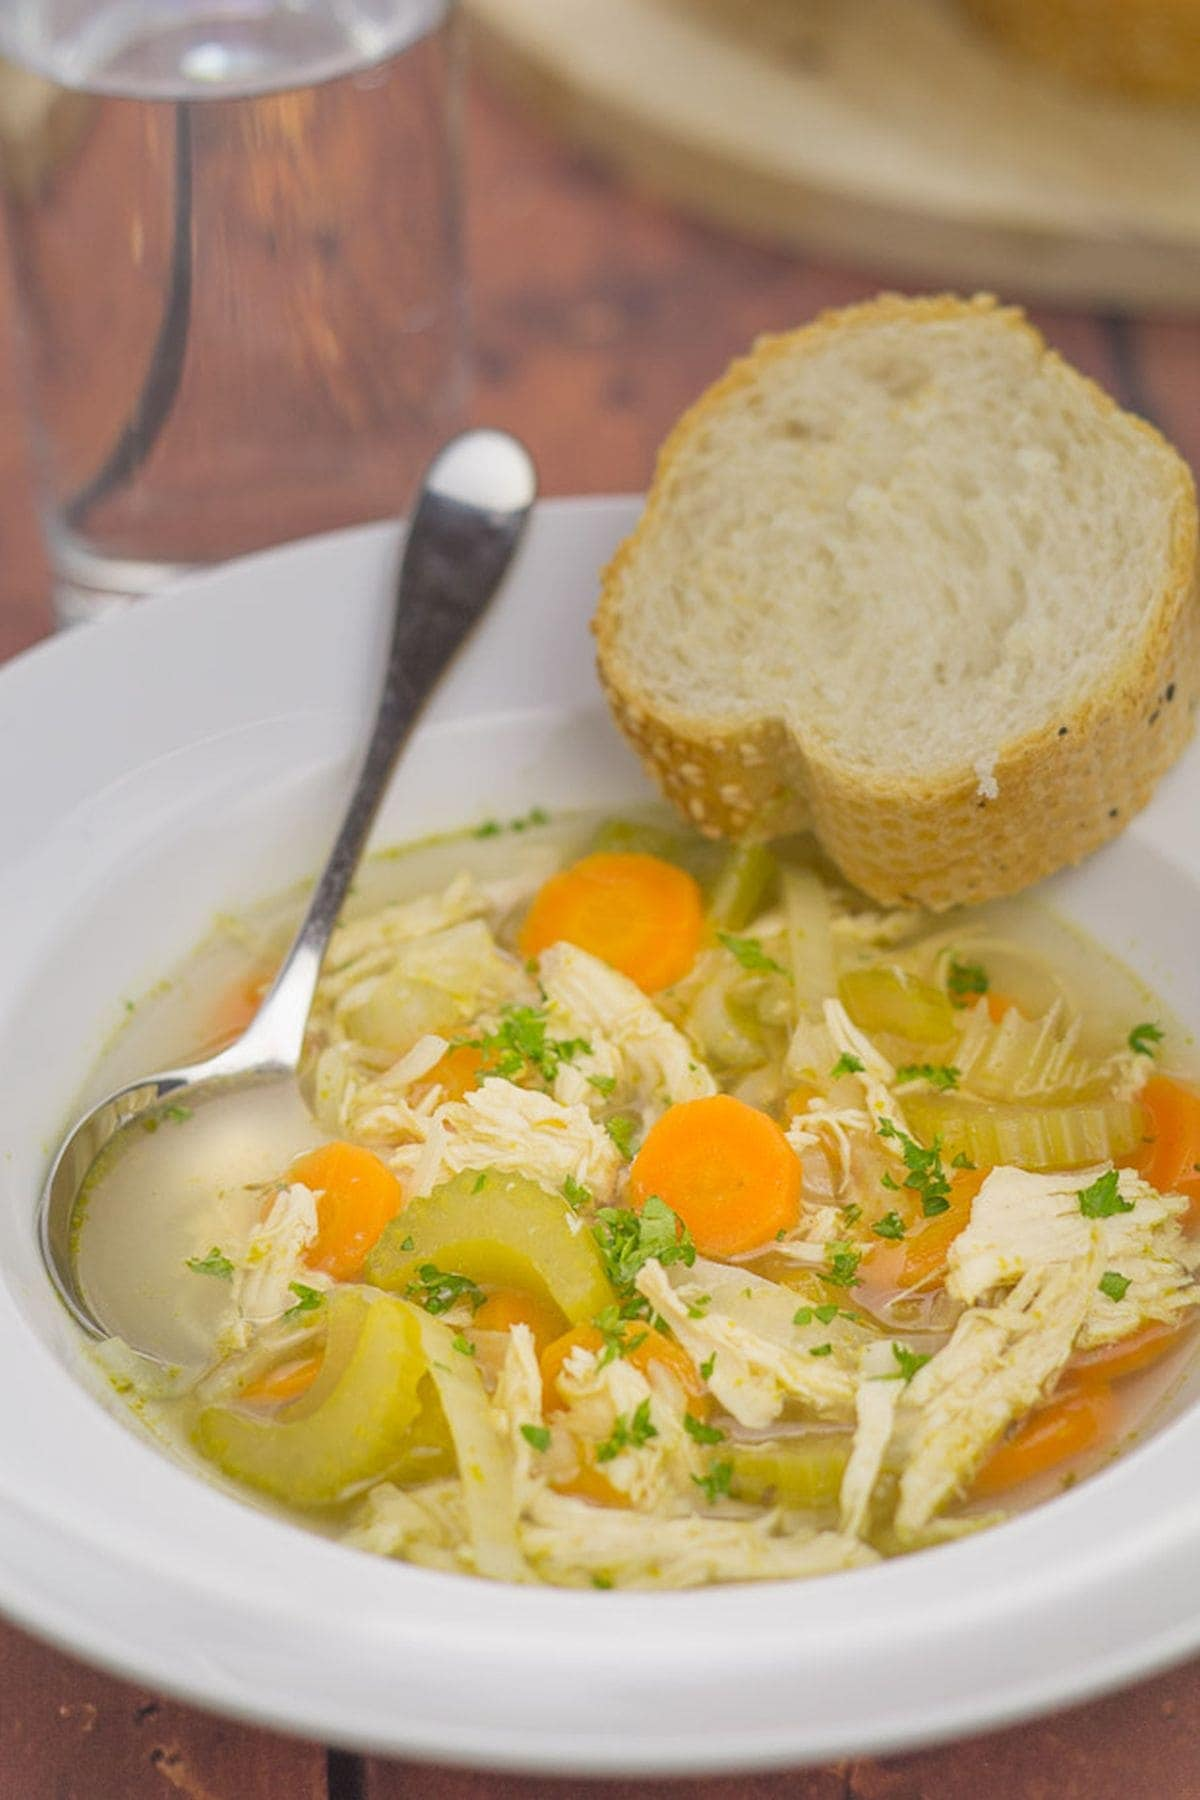 A bowl of simple chicken and vegetable soup with a spoon in. Served with a slice of bread on the side.